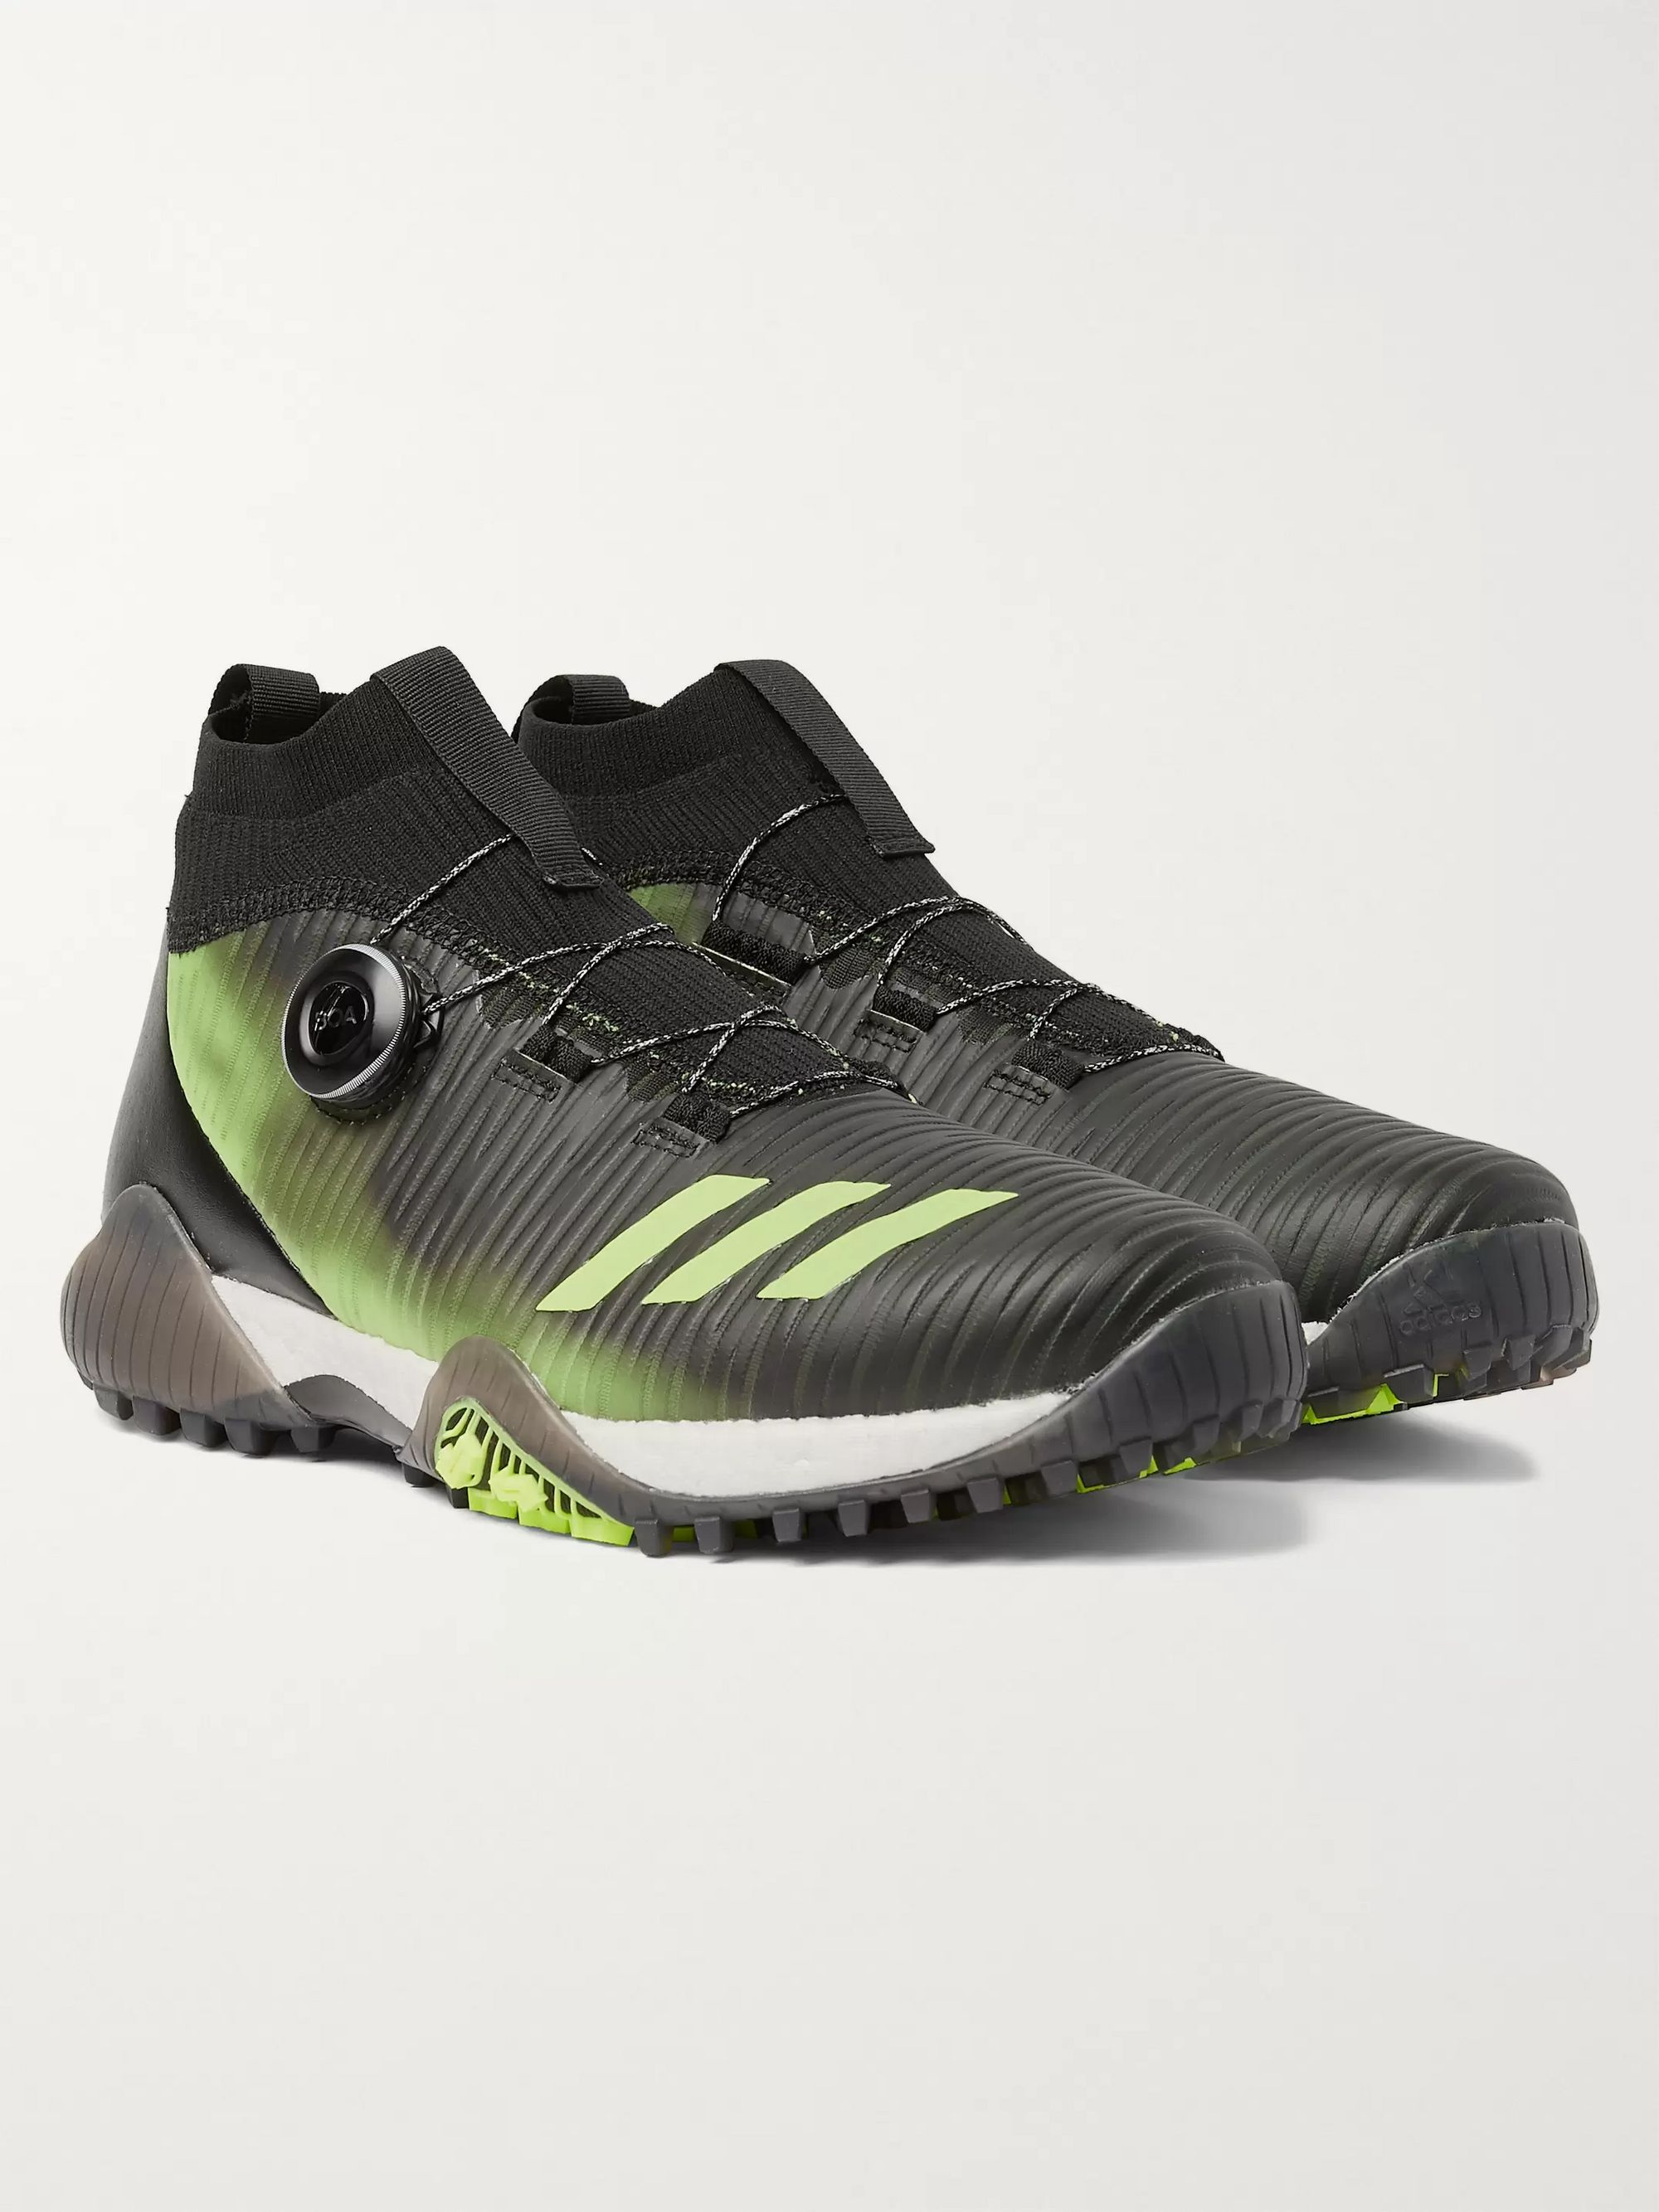 Adidas Golf CodeChaos Boa Coated-PrimeKnit and Faux Leather Golf Shoes